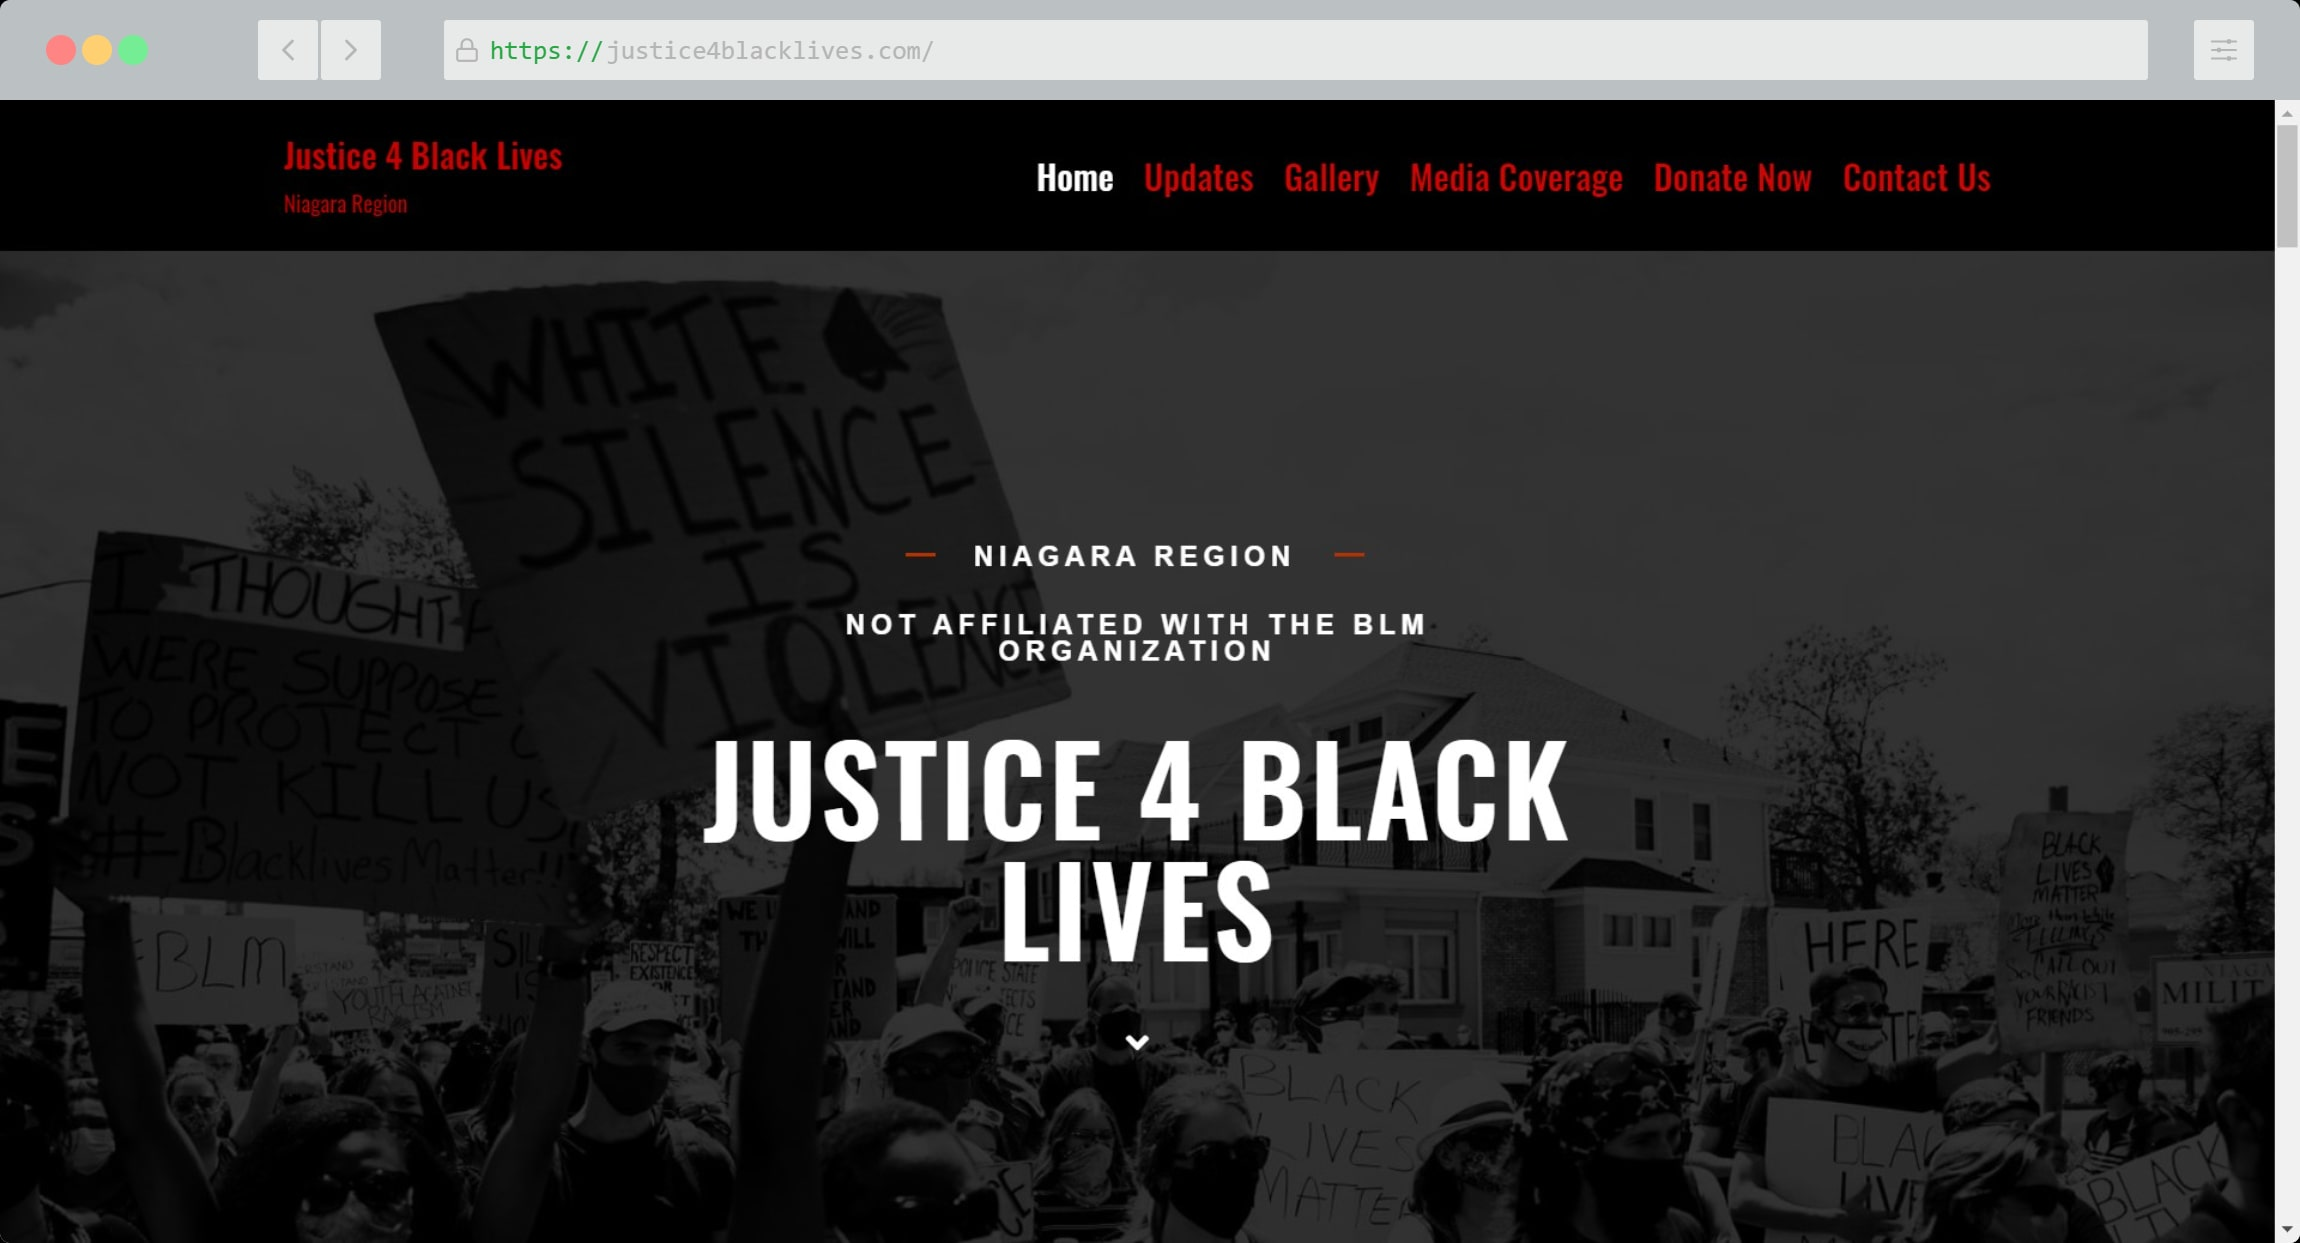 Justice 4 Black Lives Website